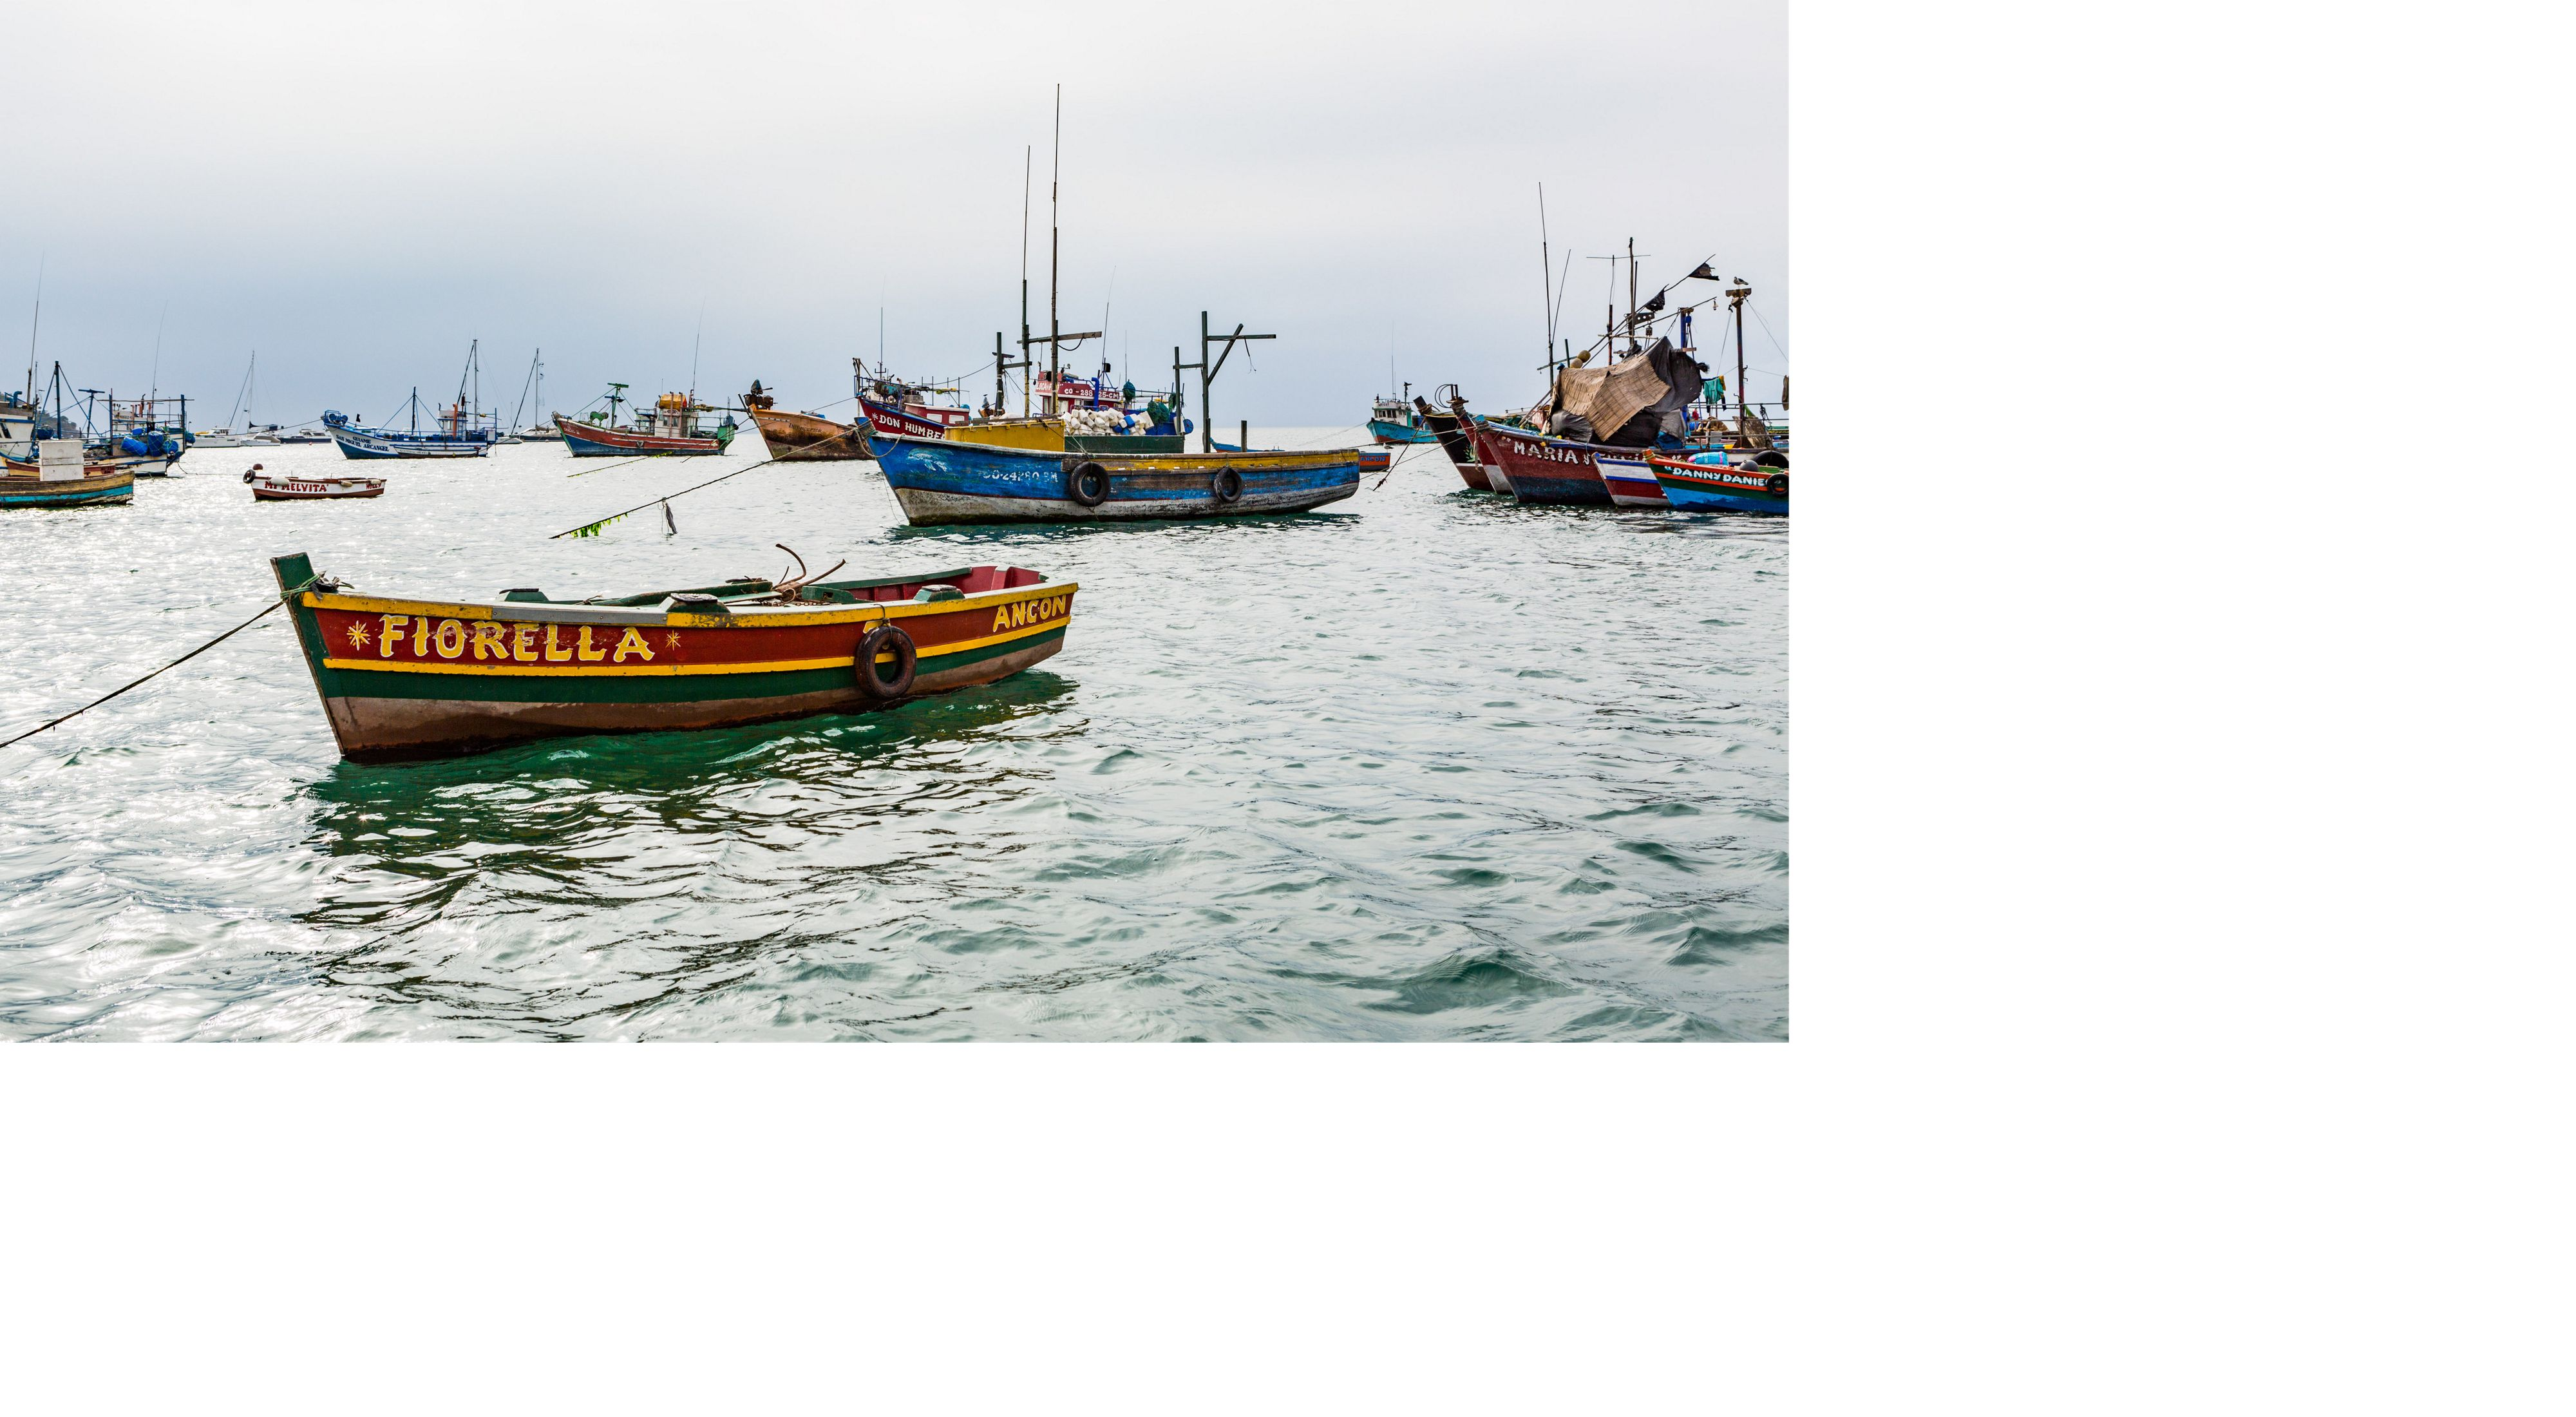 Ancon on the coast of central Peru has agreed to adopt science-based measures that have led to better catches.